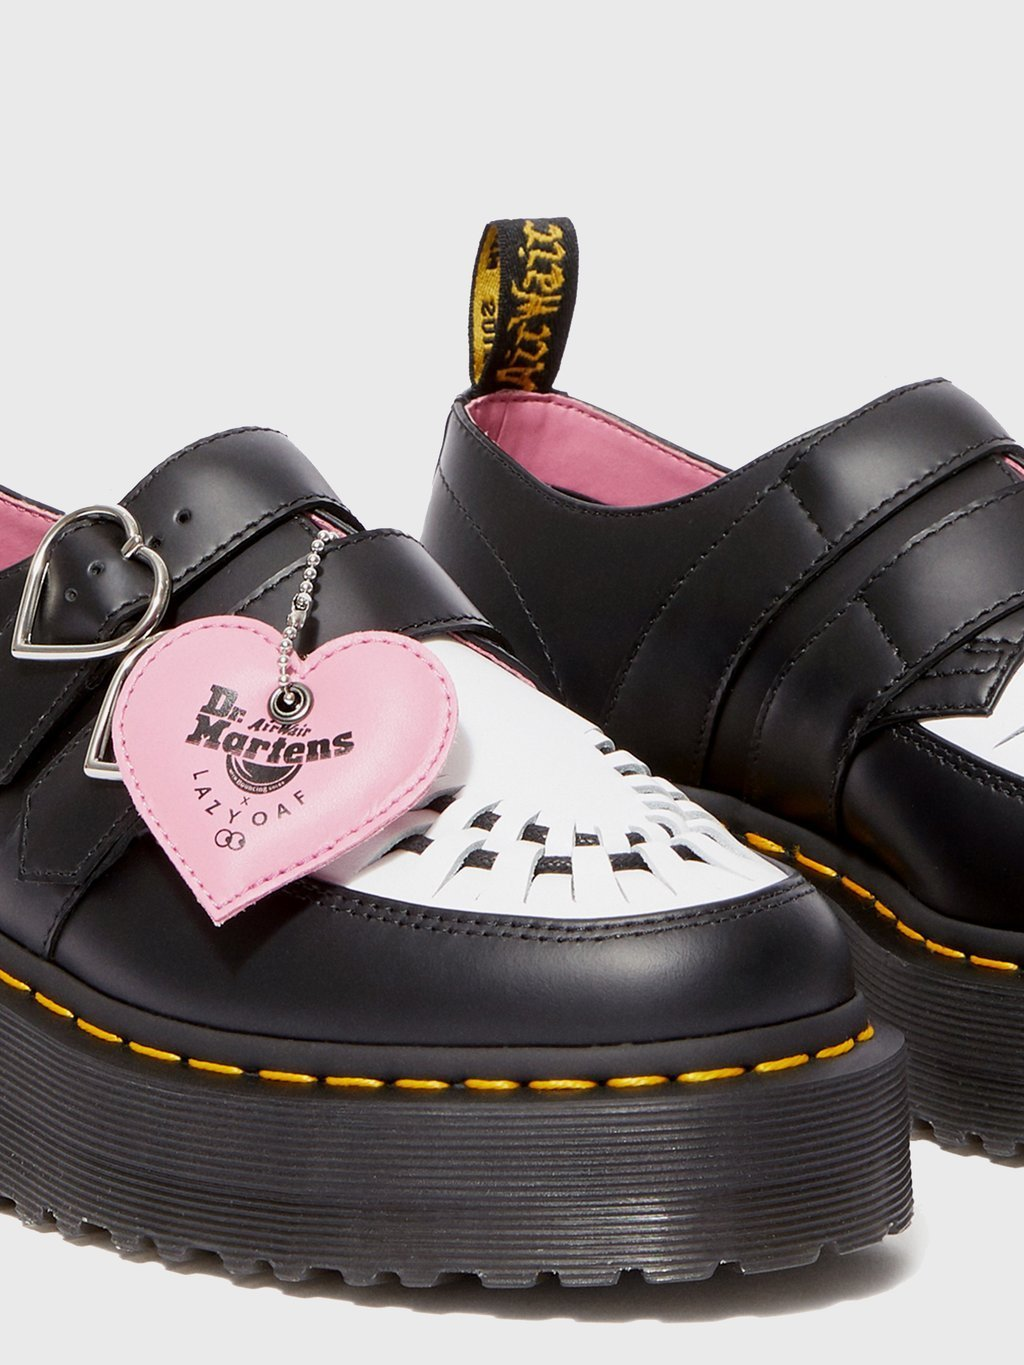 Sortita nodo Sorpassare  Shop Dr Martens 2019-20AW Heart Street Style Collaboration Plain Party  Style by whitehole | BUYMA